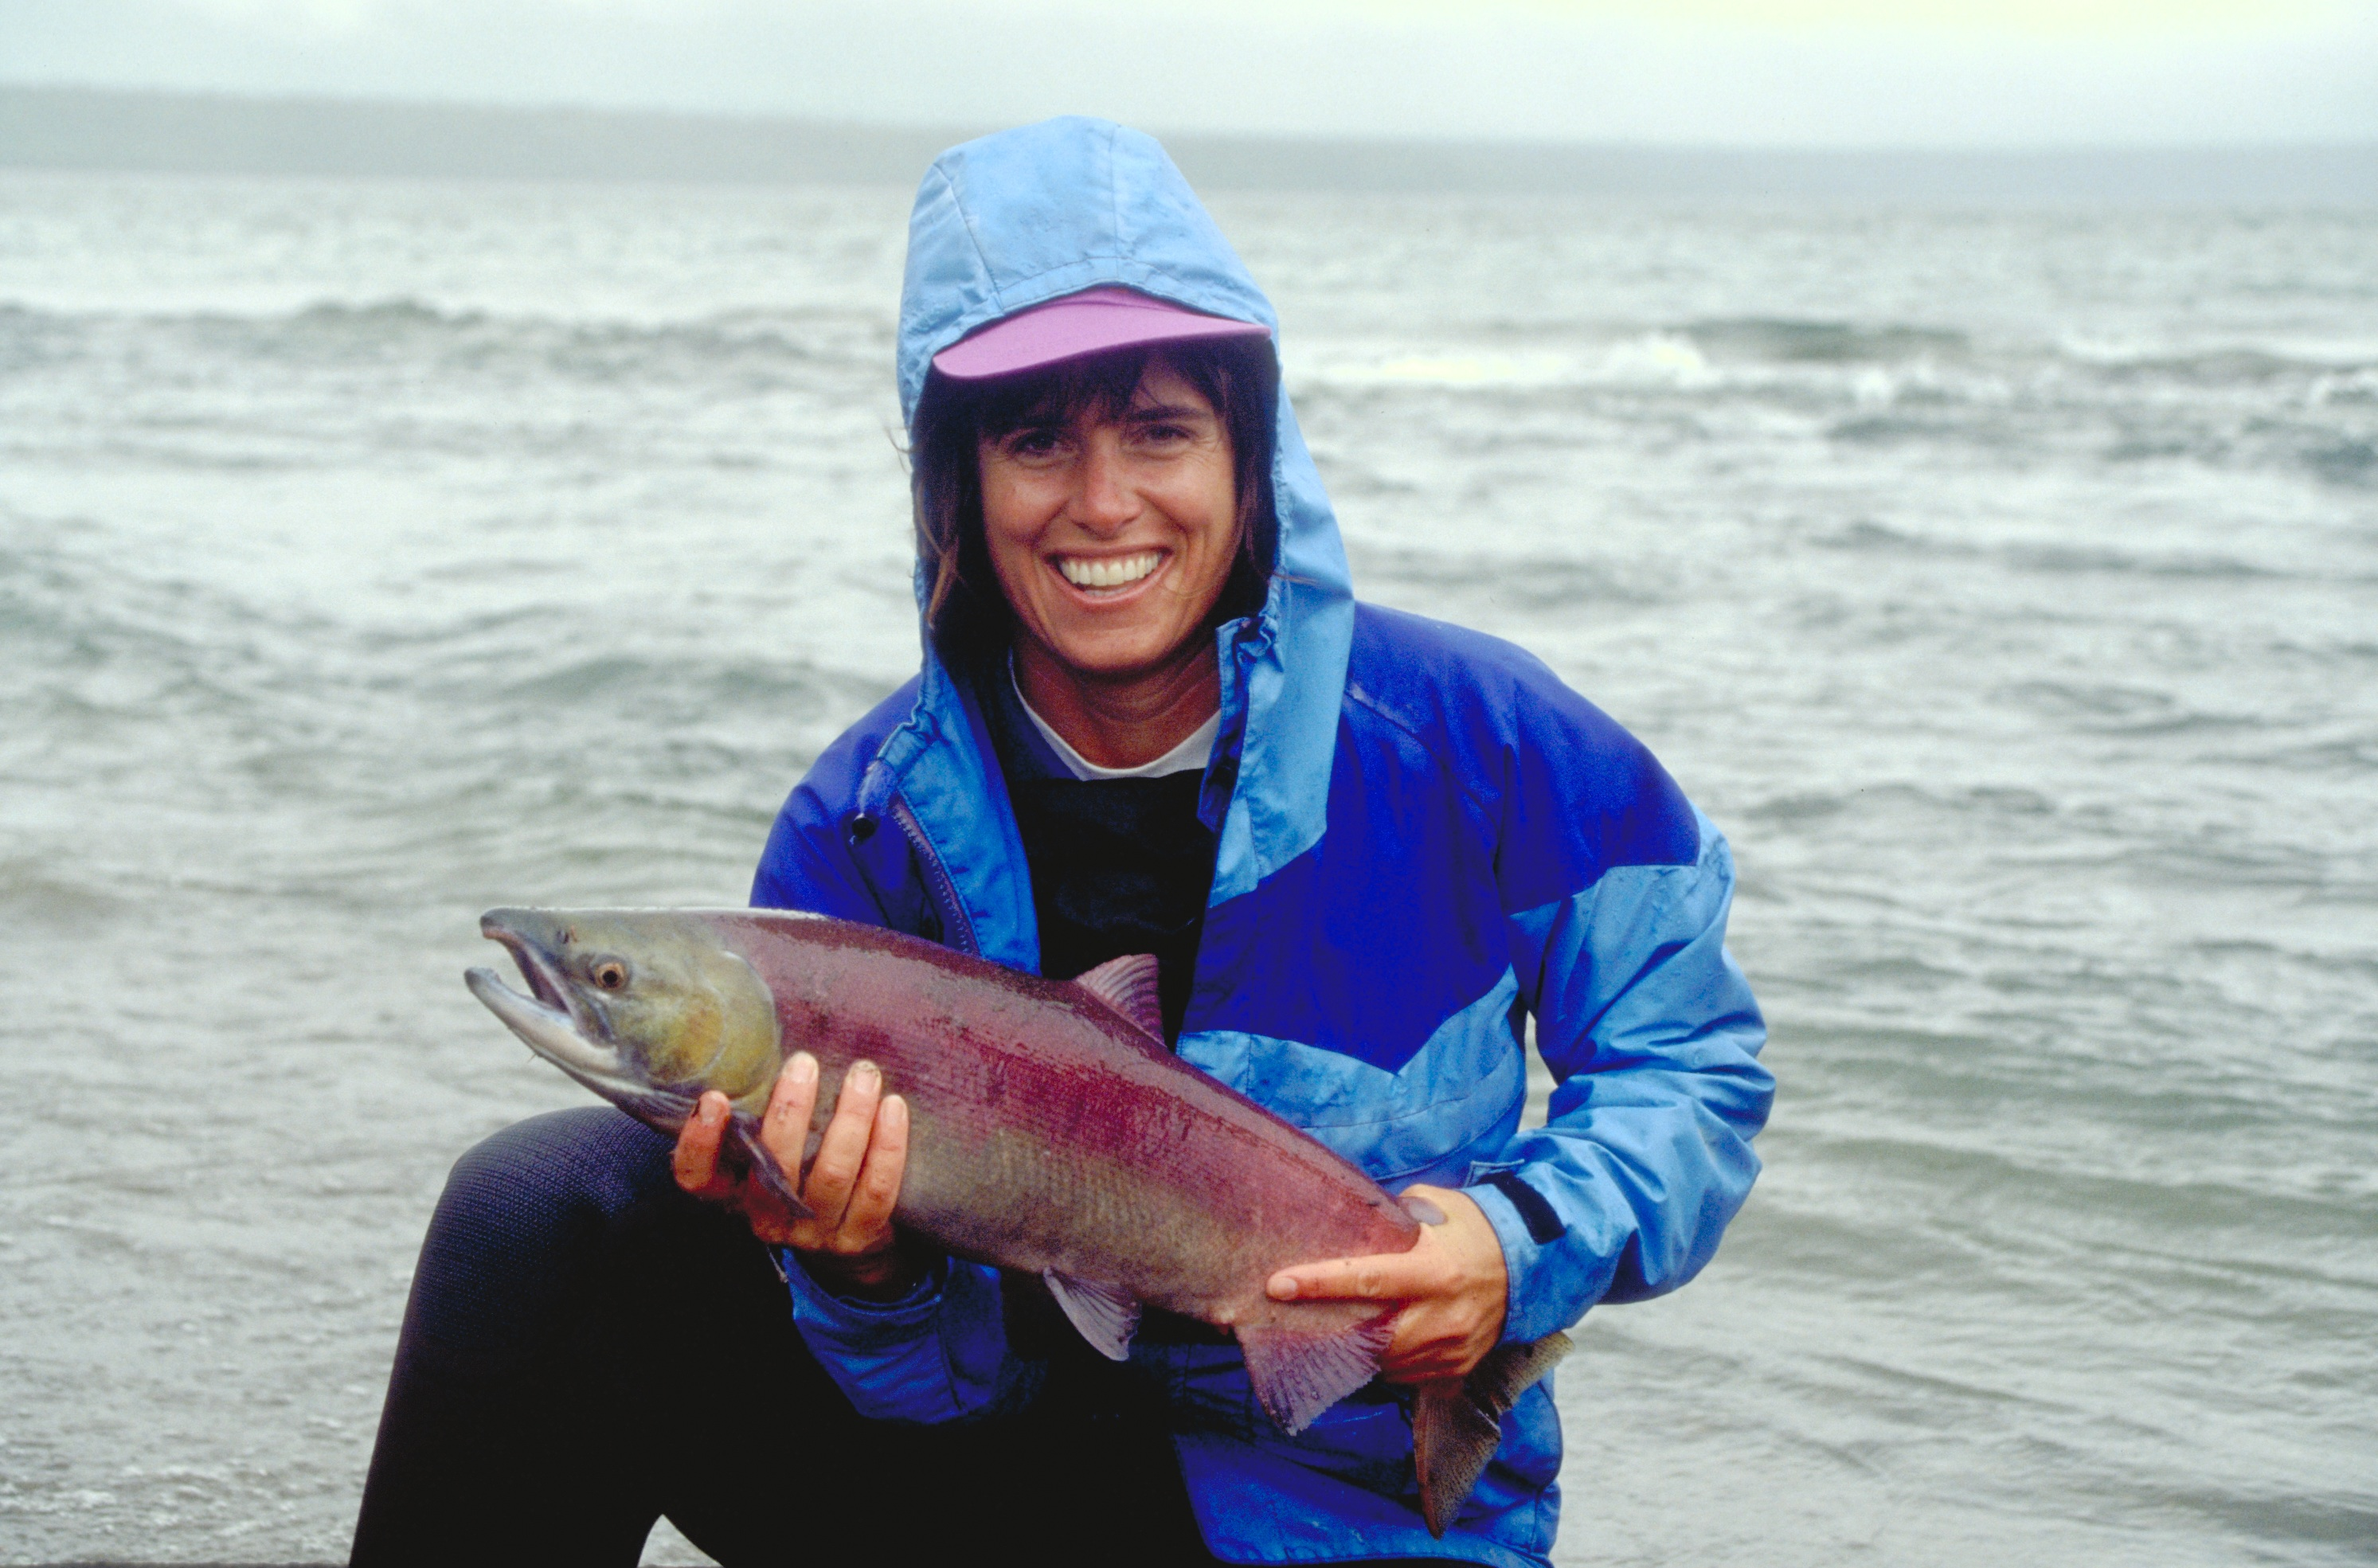 Alaskan salmon held by a woman with a big smile and a blue rain coat